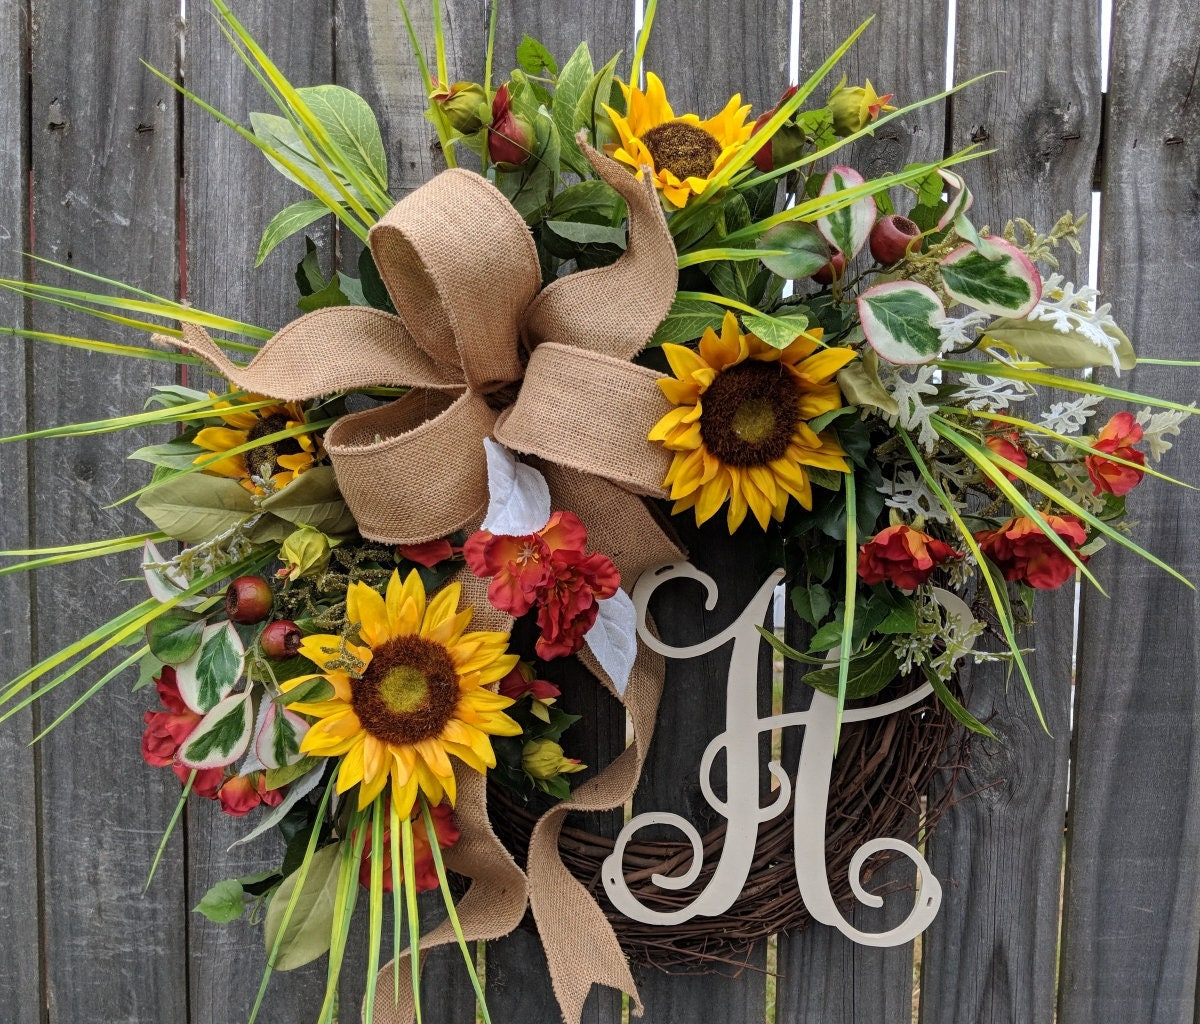 Summer Wreath Spring Summer Sunflower Wreath Monogram Wreath Grassy Fields Wreath Burlap Sunflower Wreath